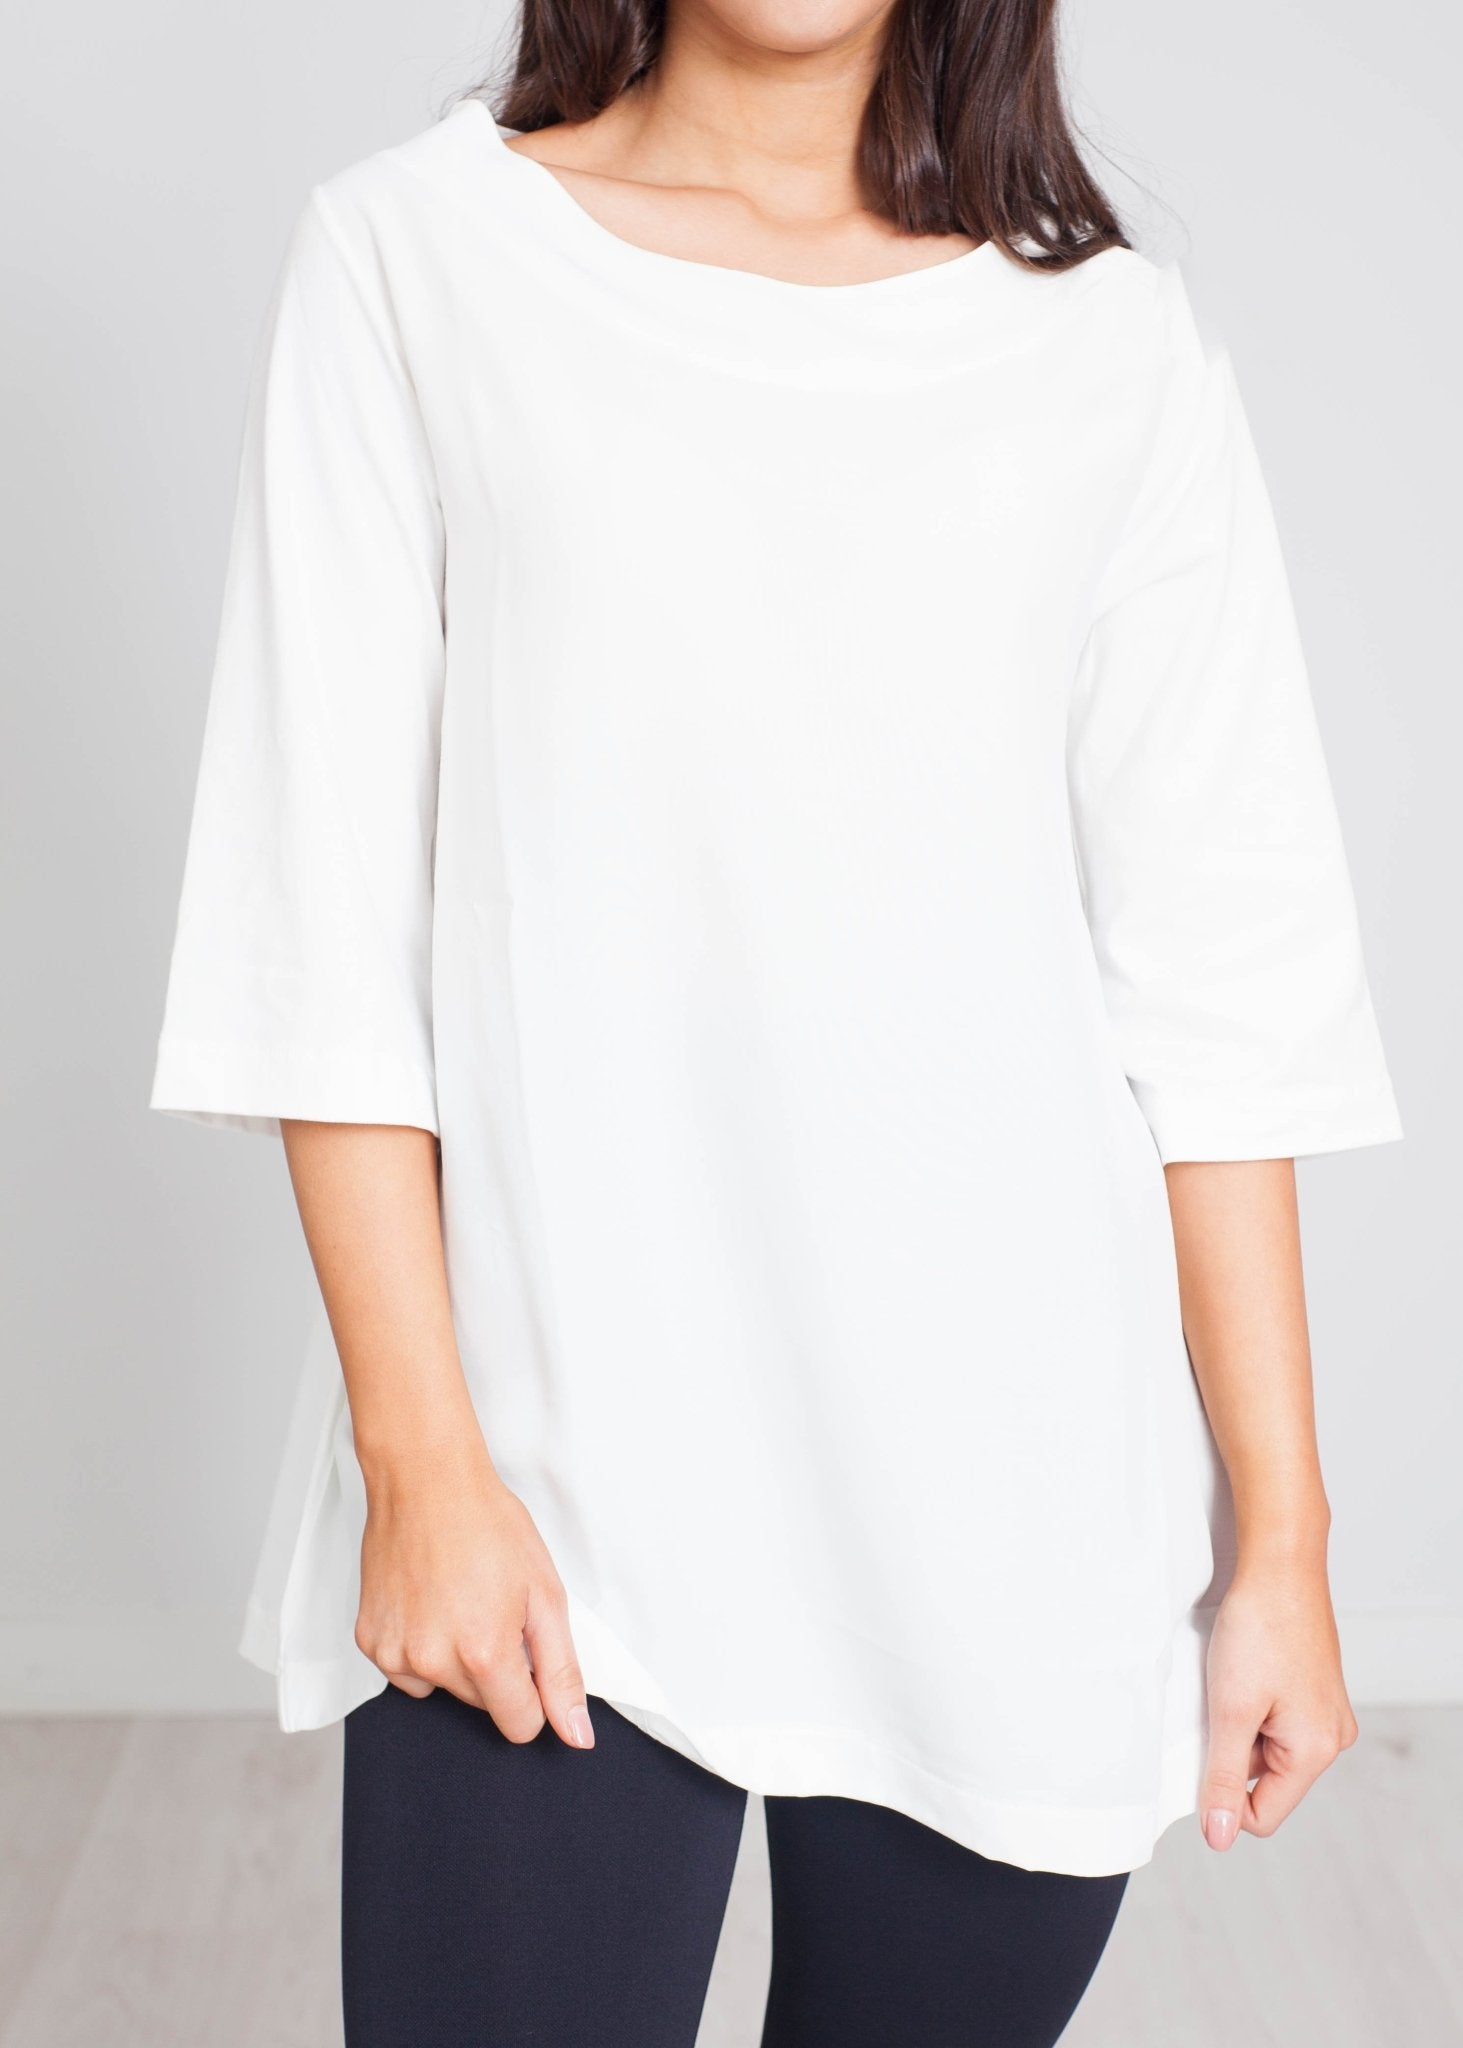 Cleo Boat Neck Top In White - The Walk in Wardrobe